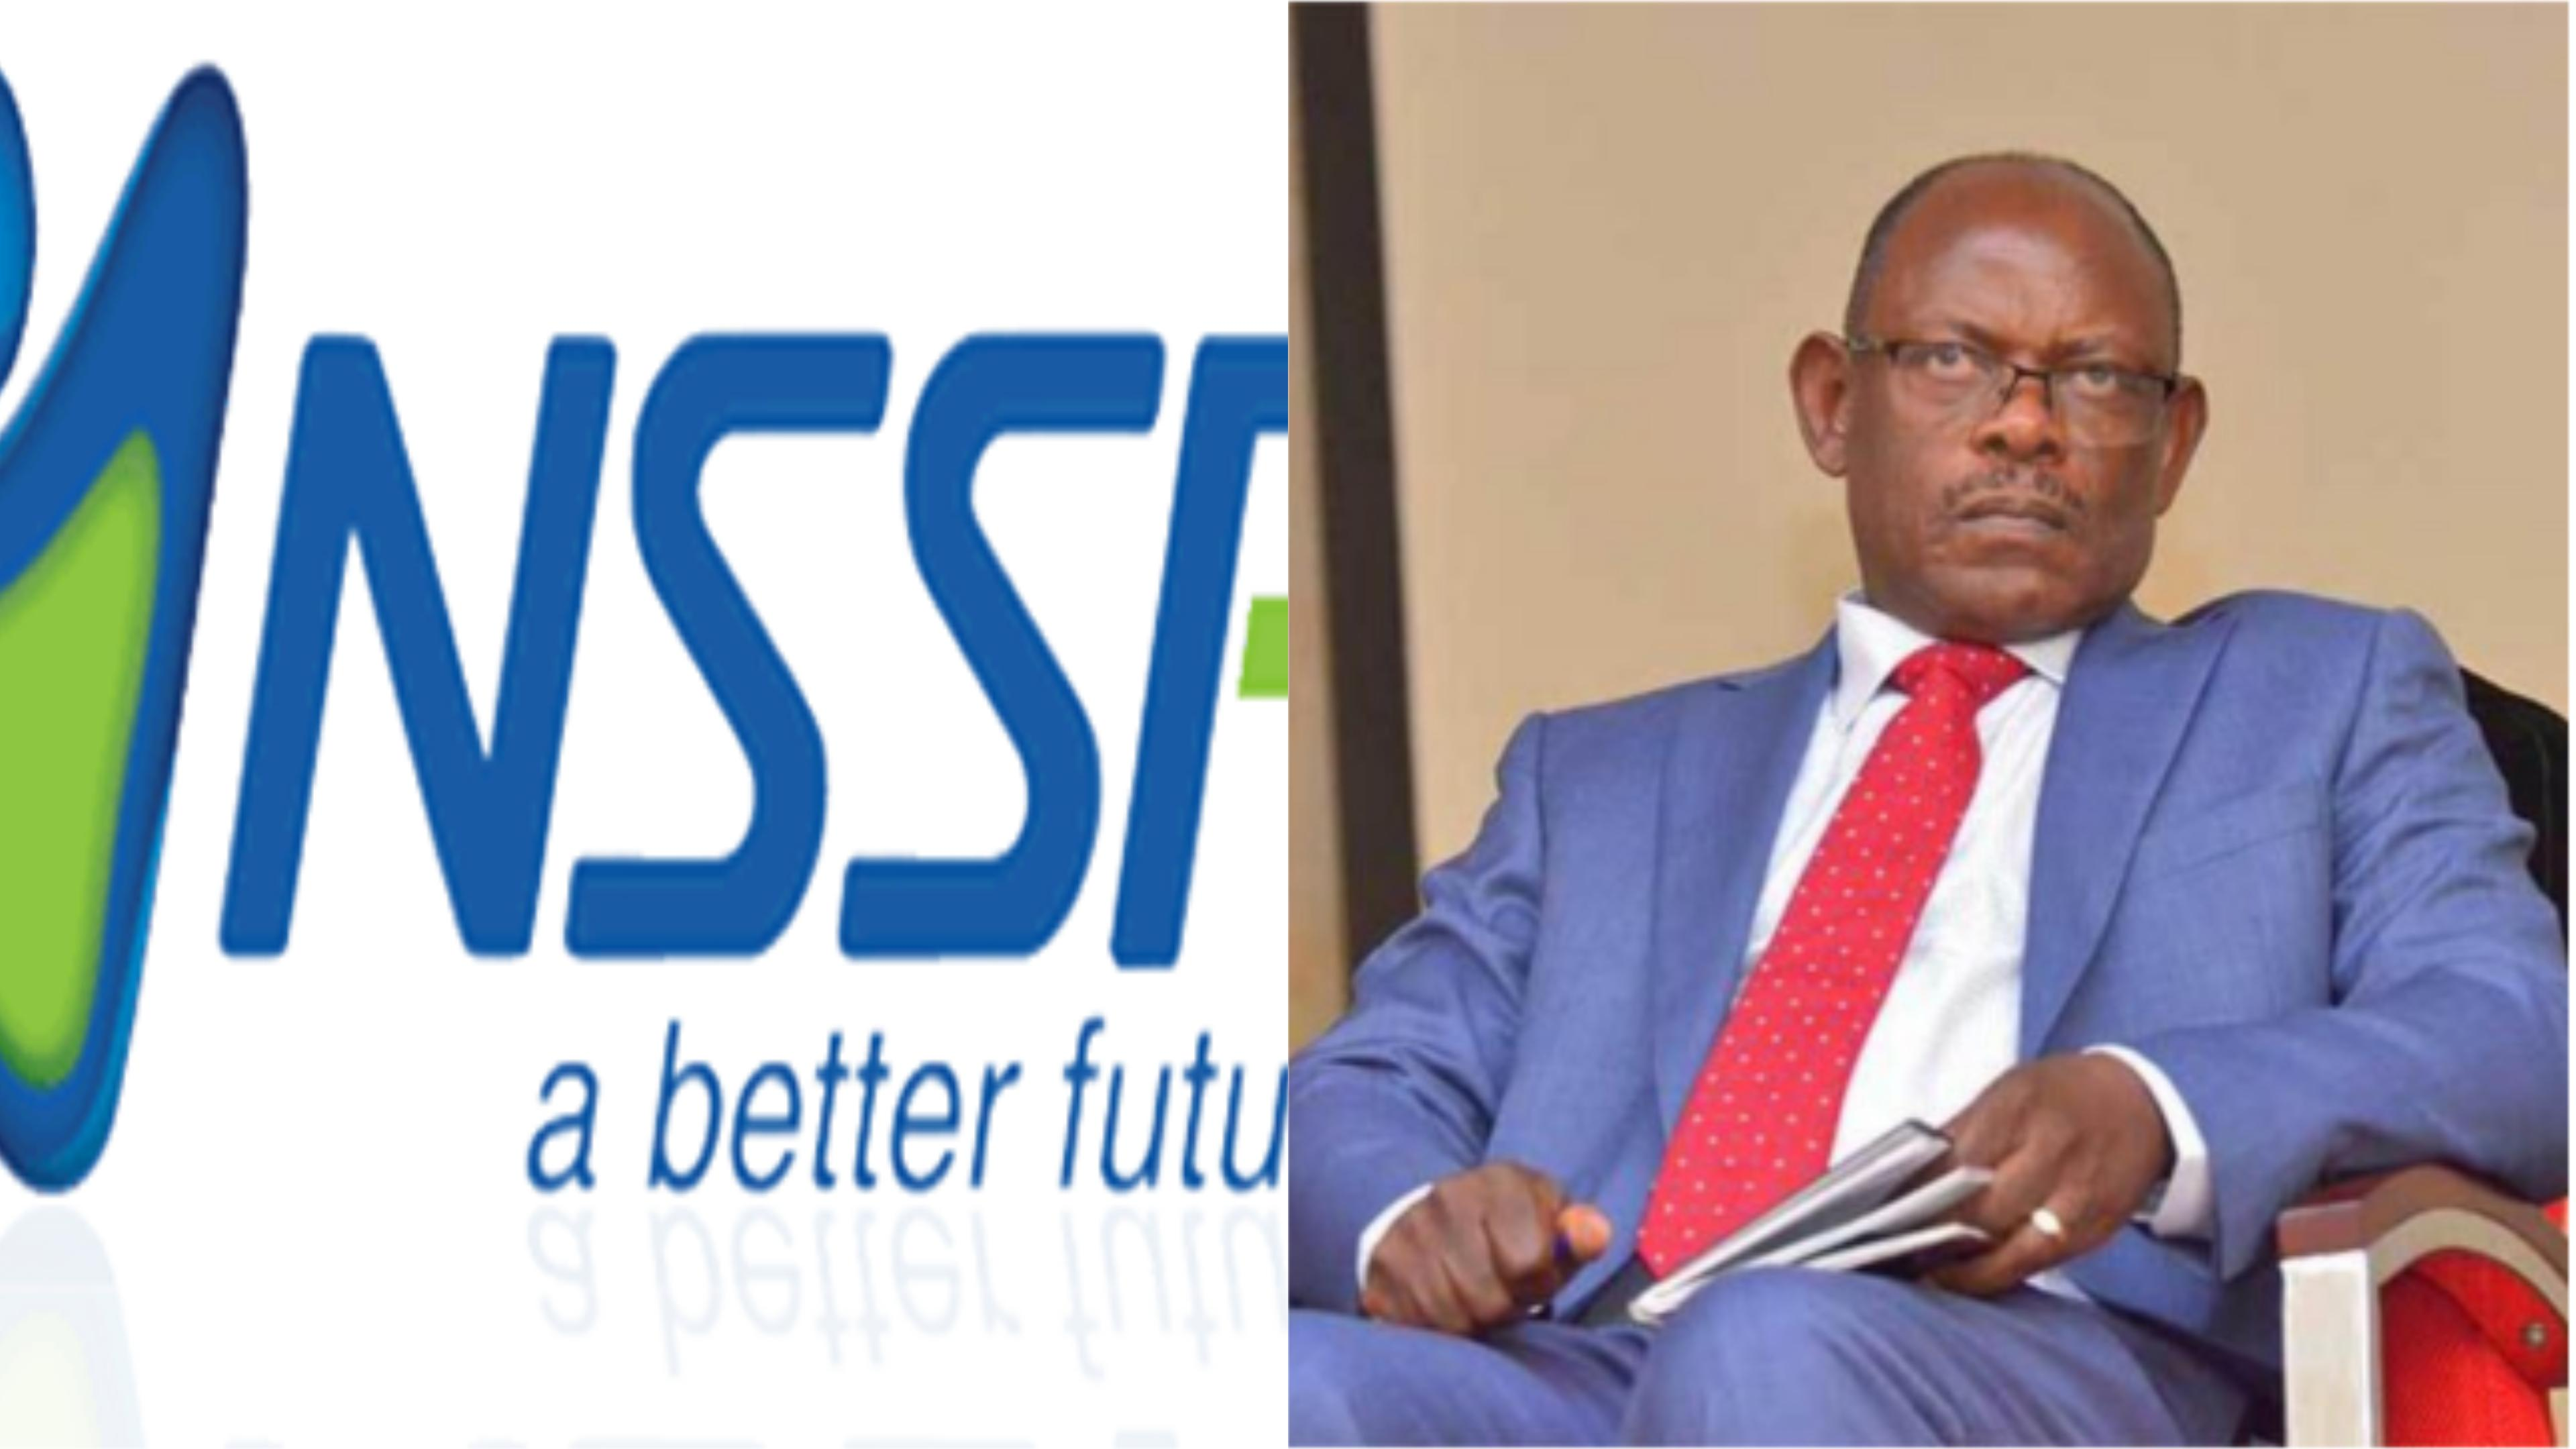 The National Social Security Fund wants Makerere staff paid monthlycontribution. (FILE PHOTO)